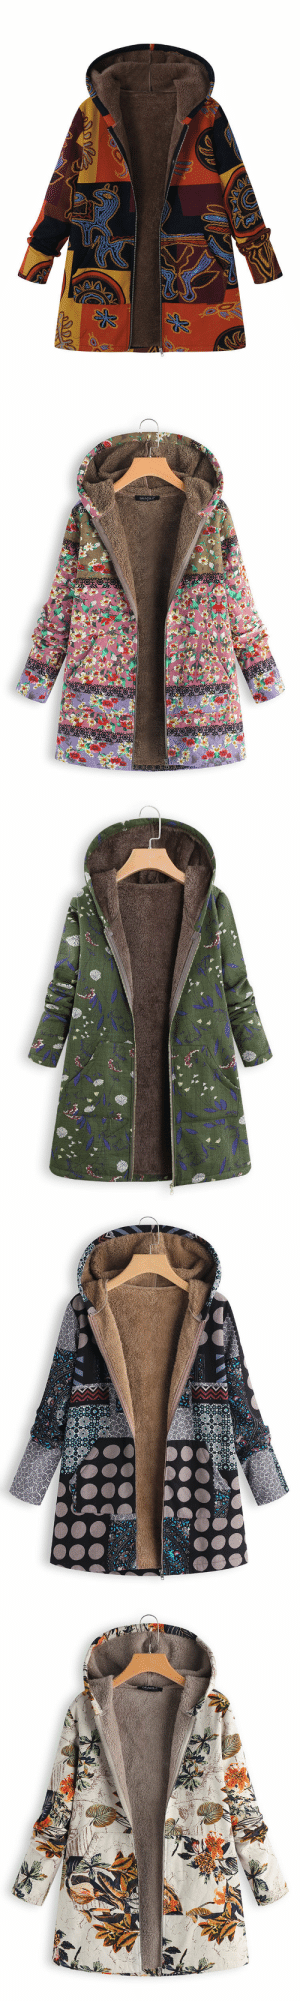 permanentfilemugglethings:  Printed Hooded Pockets Jackets for Women Check out HERE20% off coupon code:October20: Opoo   GRACILA   w  וadll  -ו3 y permanentfilemugglethings:  Printed Hooded Pockets Jackets for Women Check out HERE20% off coupon code:October20